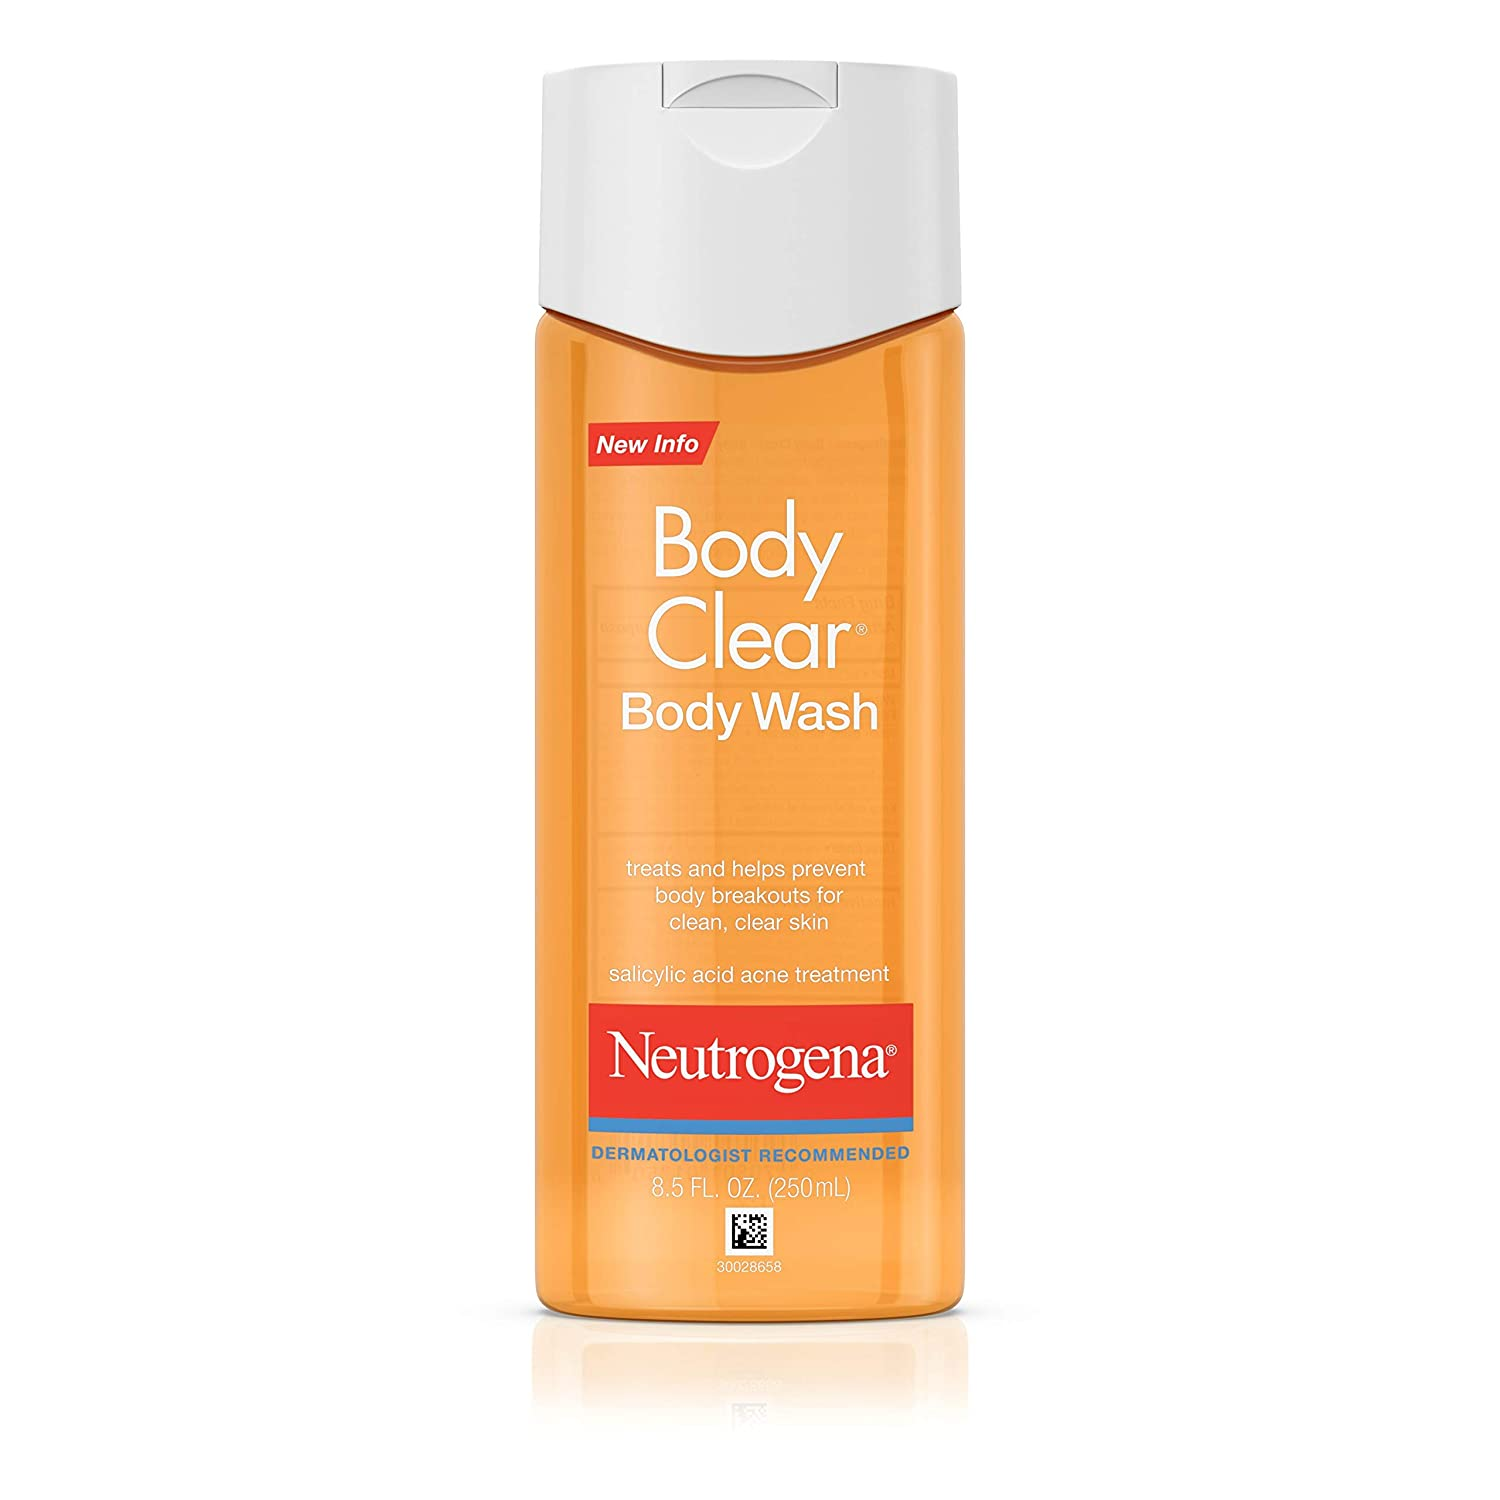 Neutrogena Body Clear Body Wash for Clean and Clear Skin; best body wash for acne